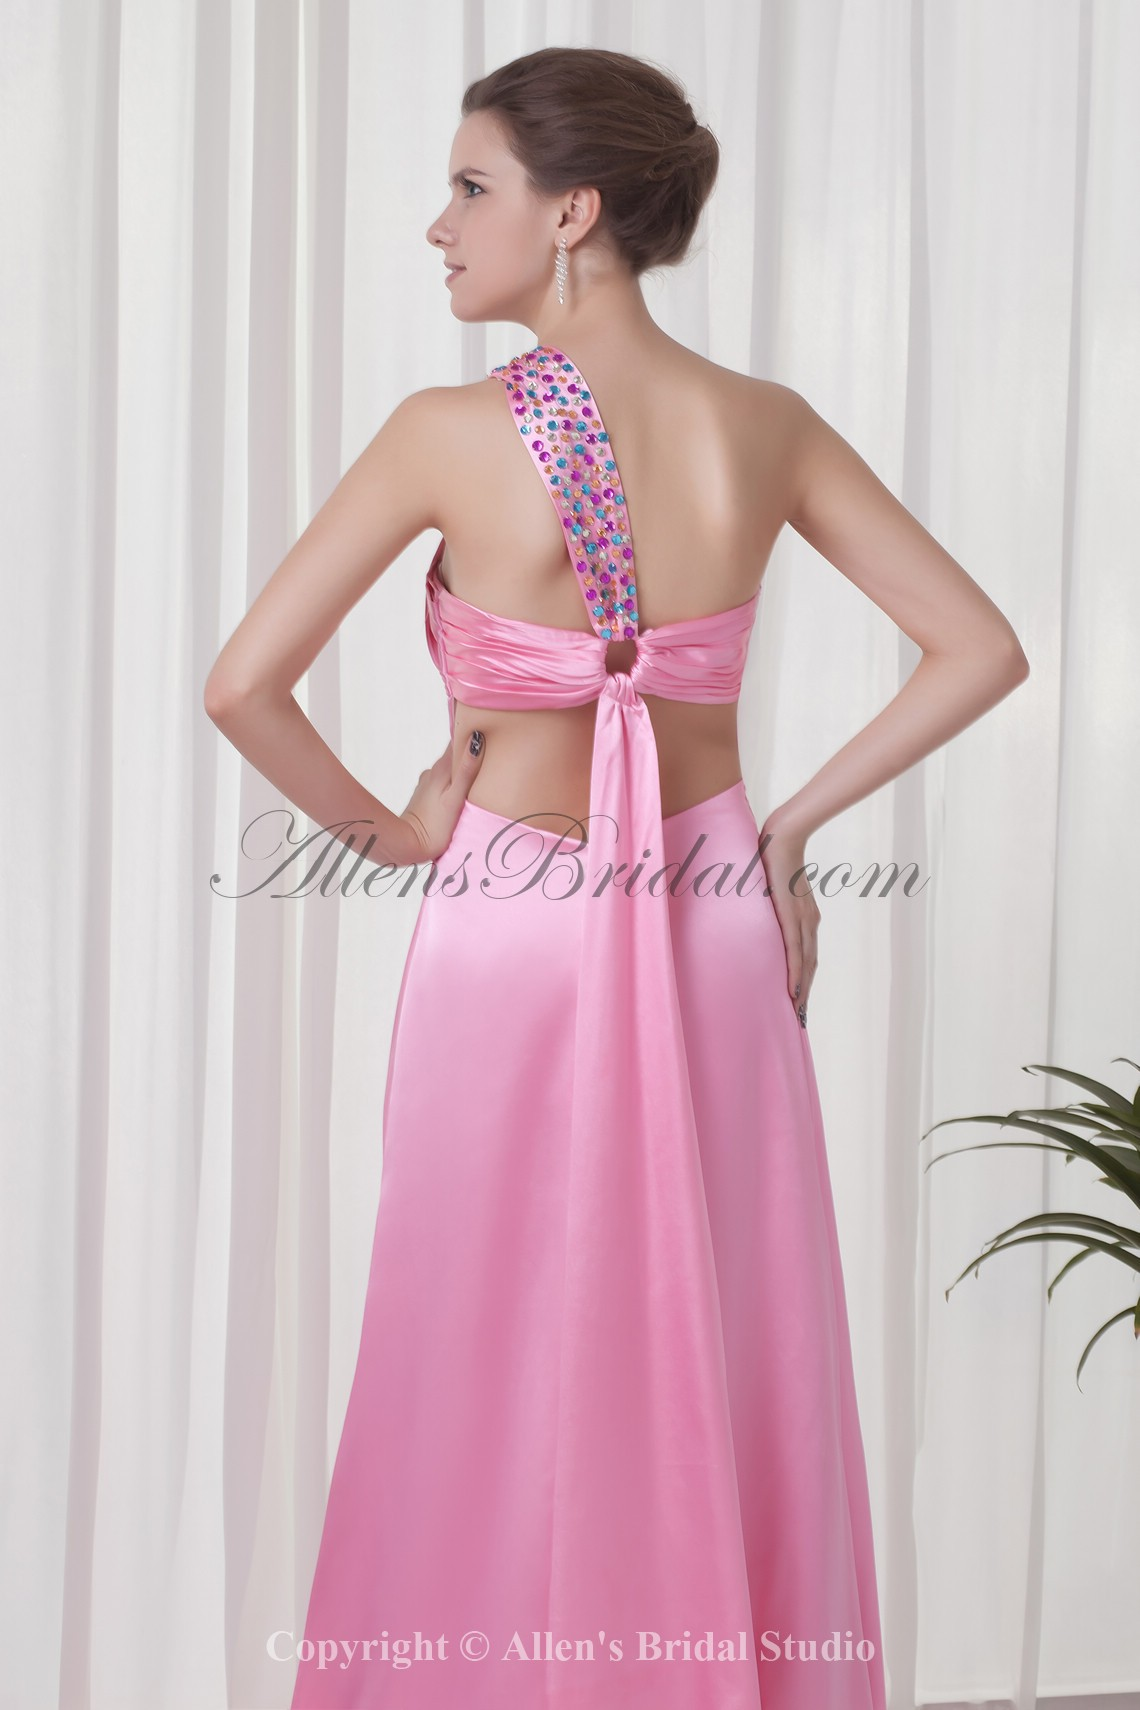 /302-2417/satin-one-shoulder-neckline-a-line-sweep-train-directionally-ruched-prom-dress.jpg